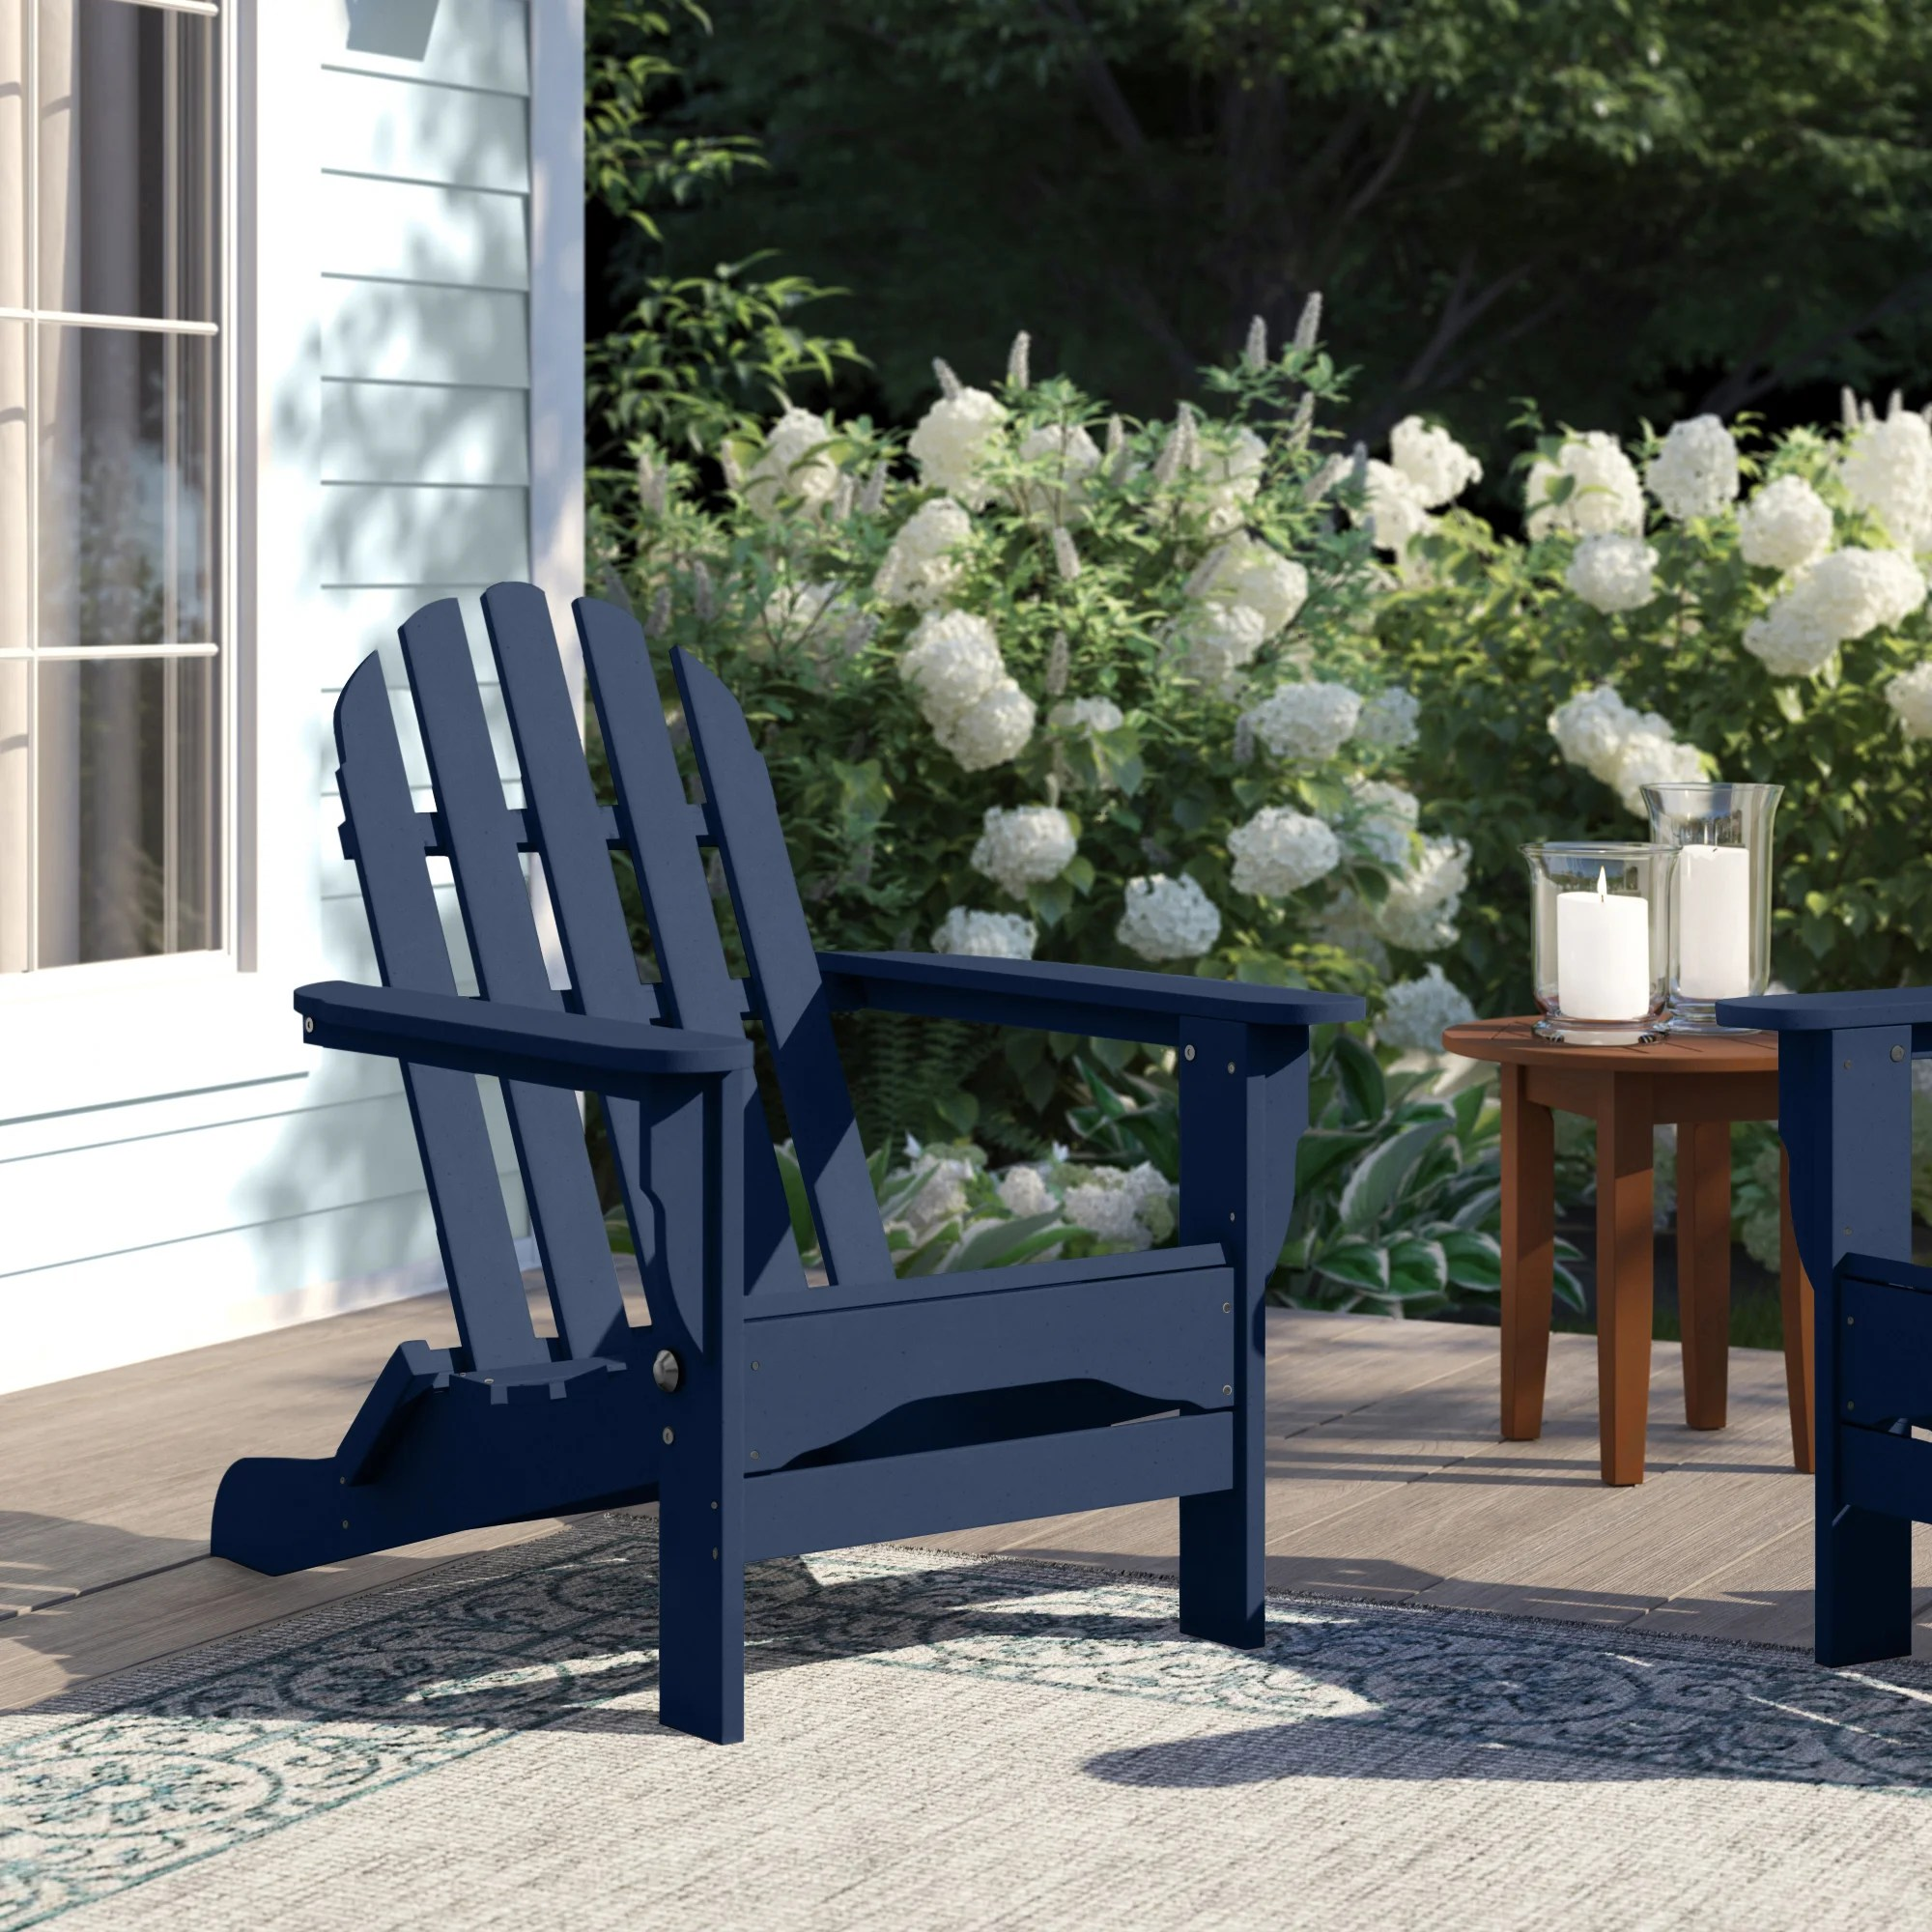 Blue Plastic Adirondack Chairs You Ll Love In 2021 Wayfair - Garden Furniture Clearance Tickled Trout